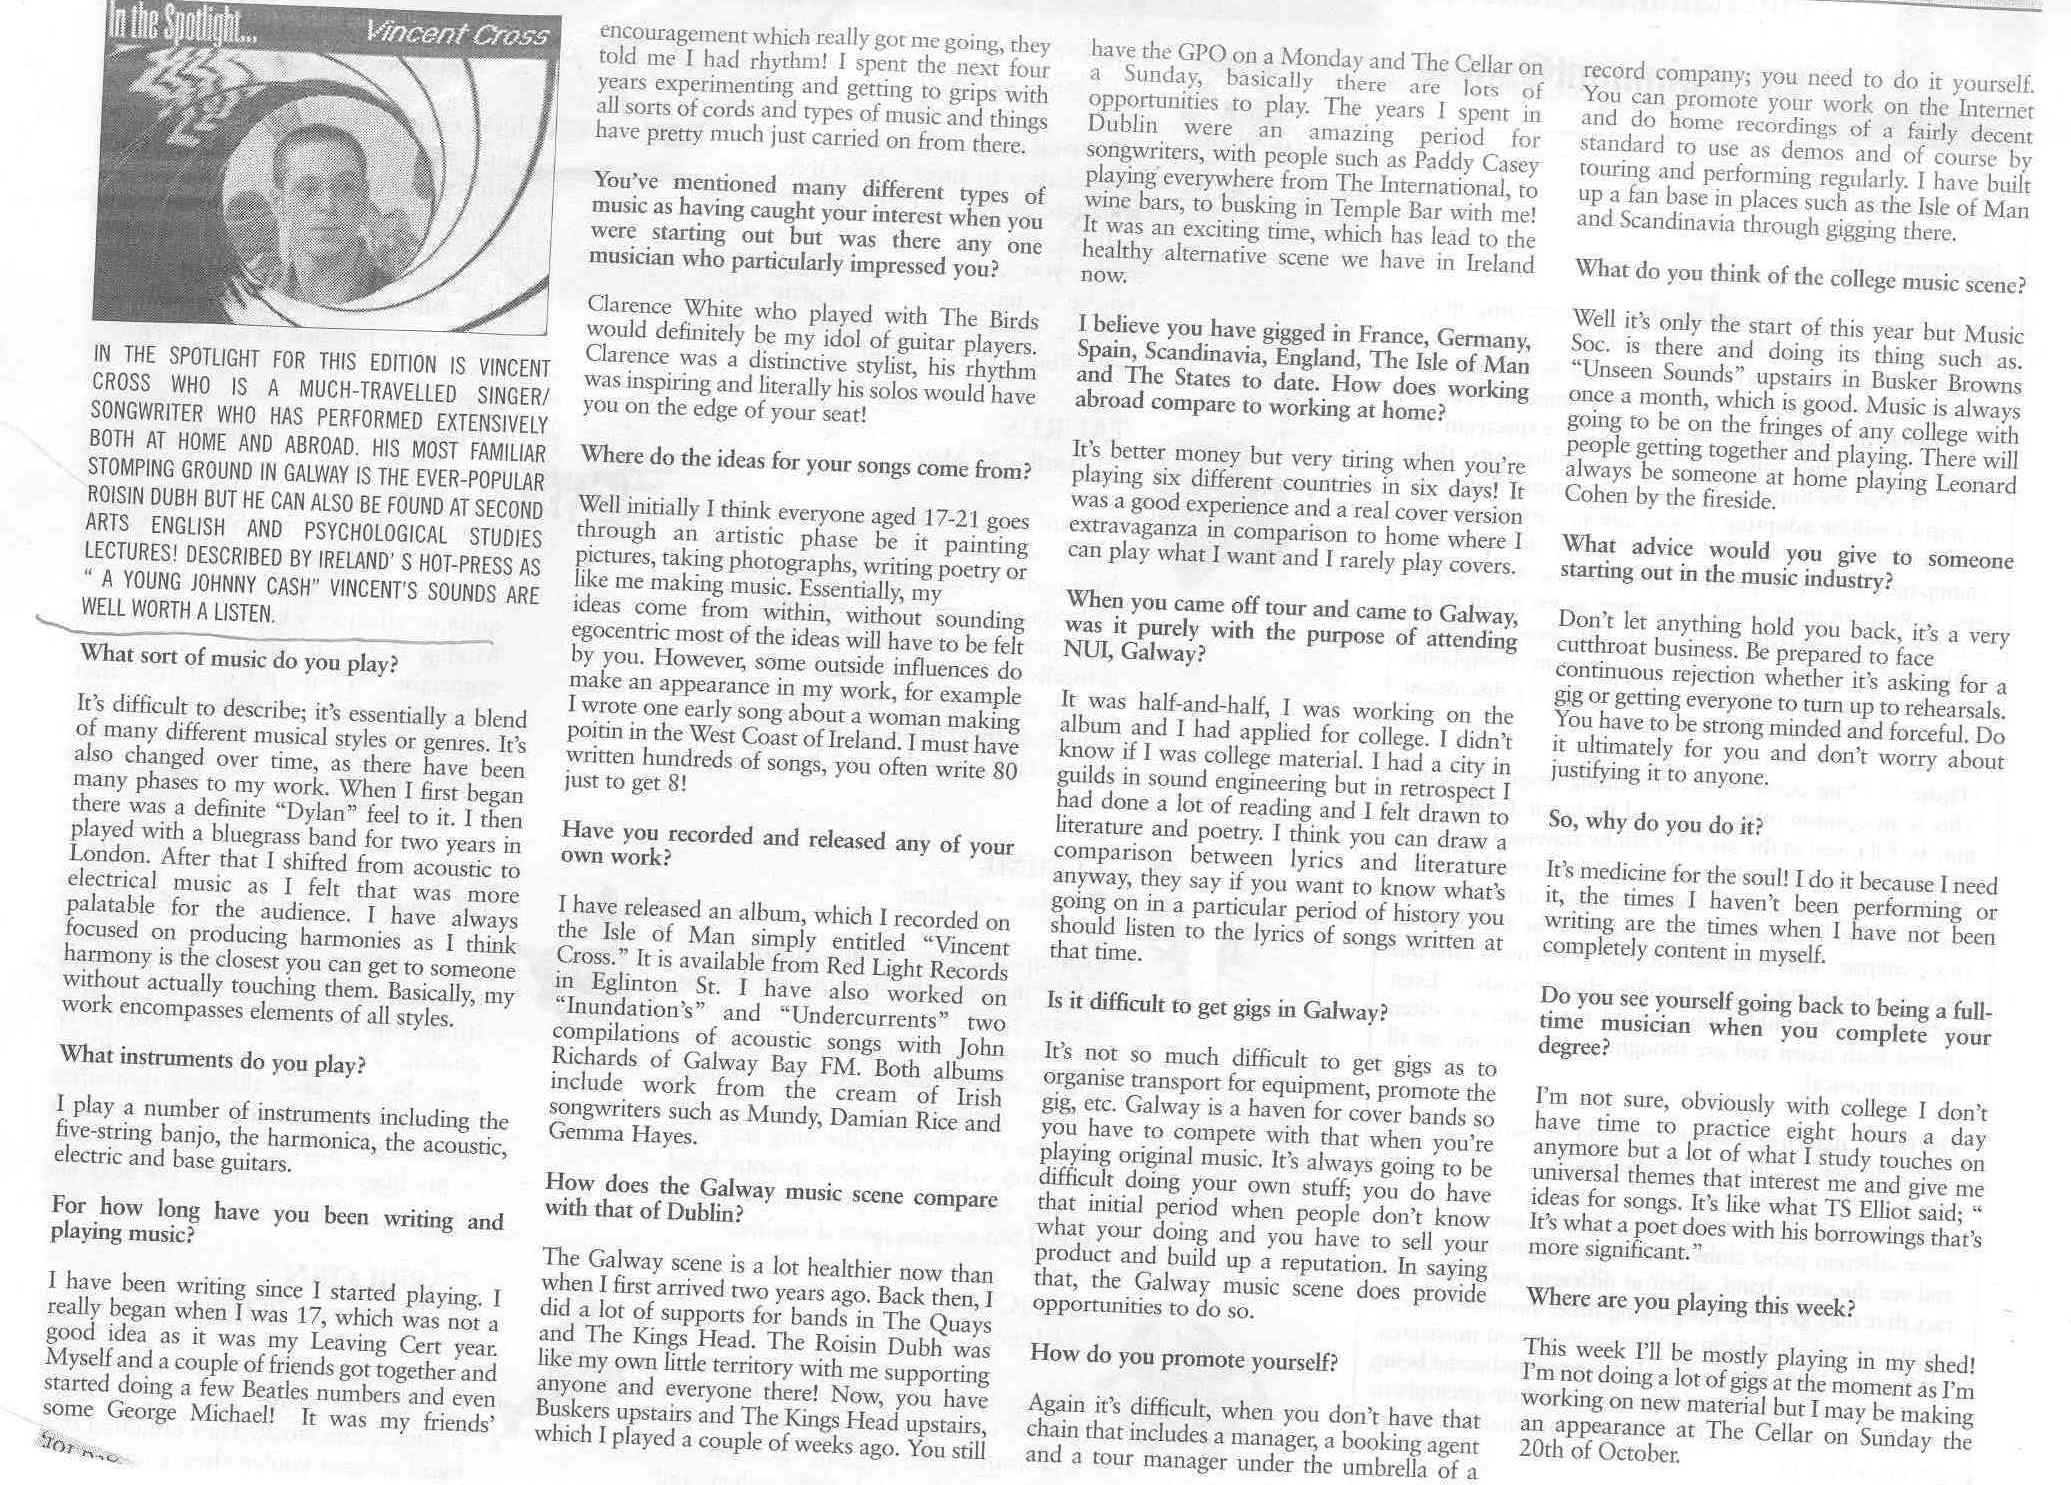 Interview Q & A for Galway University 2003